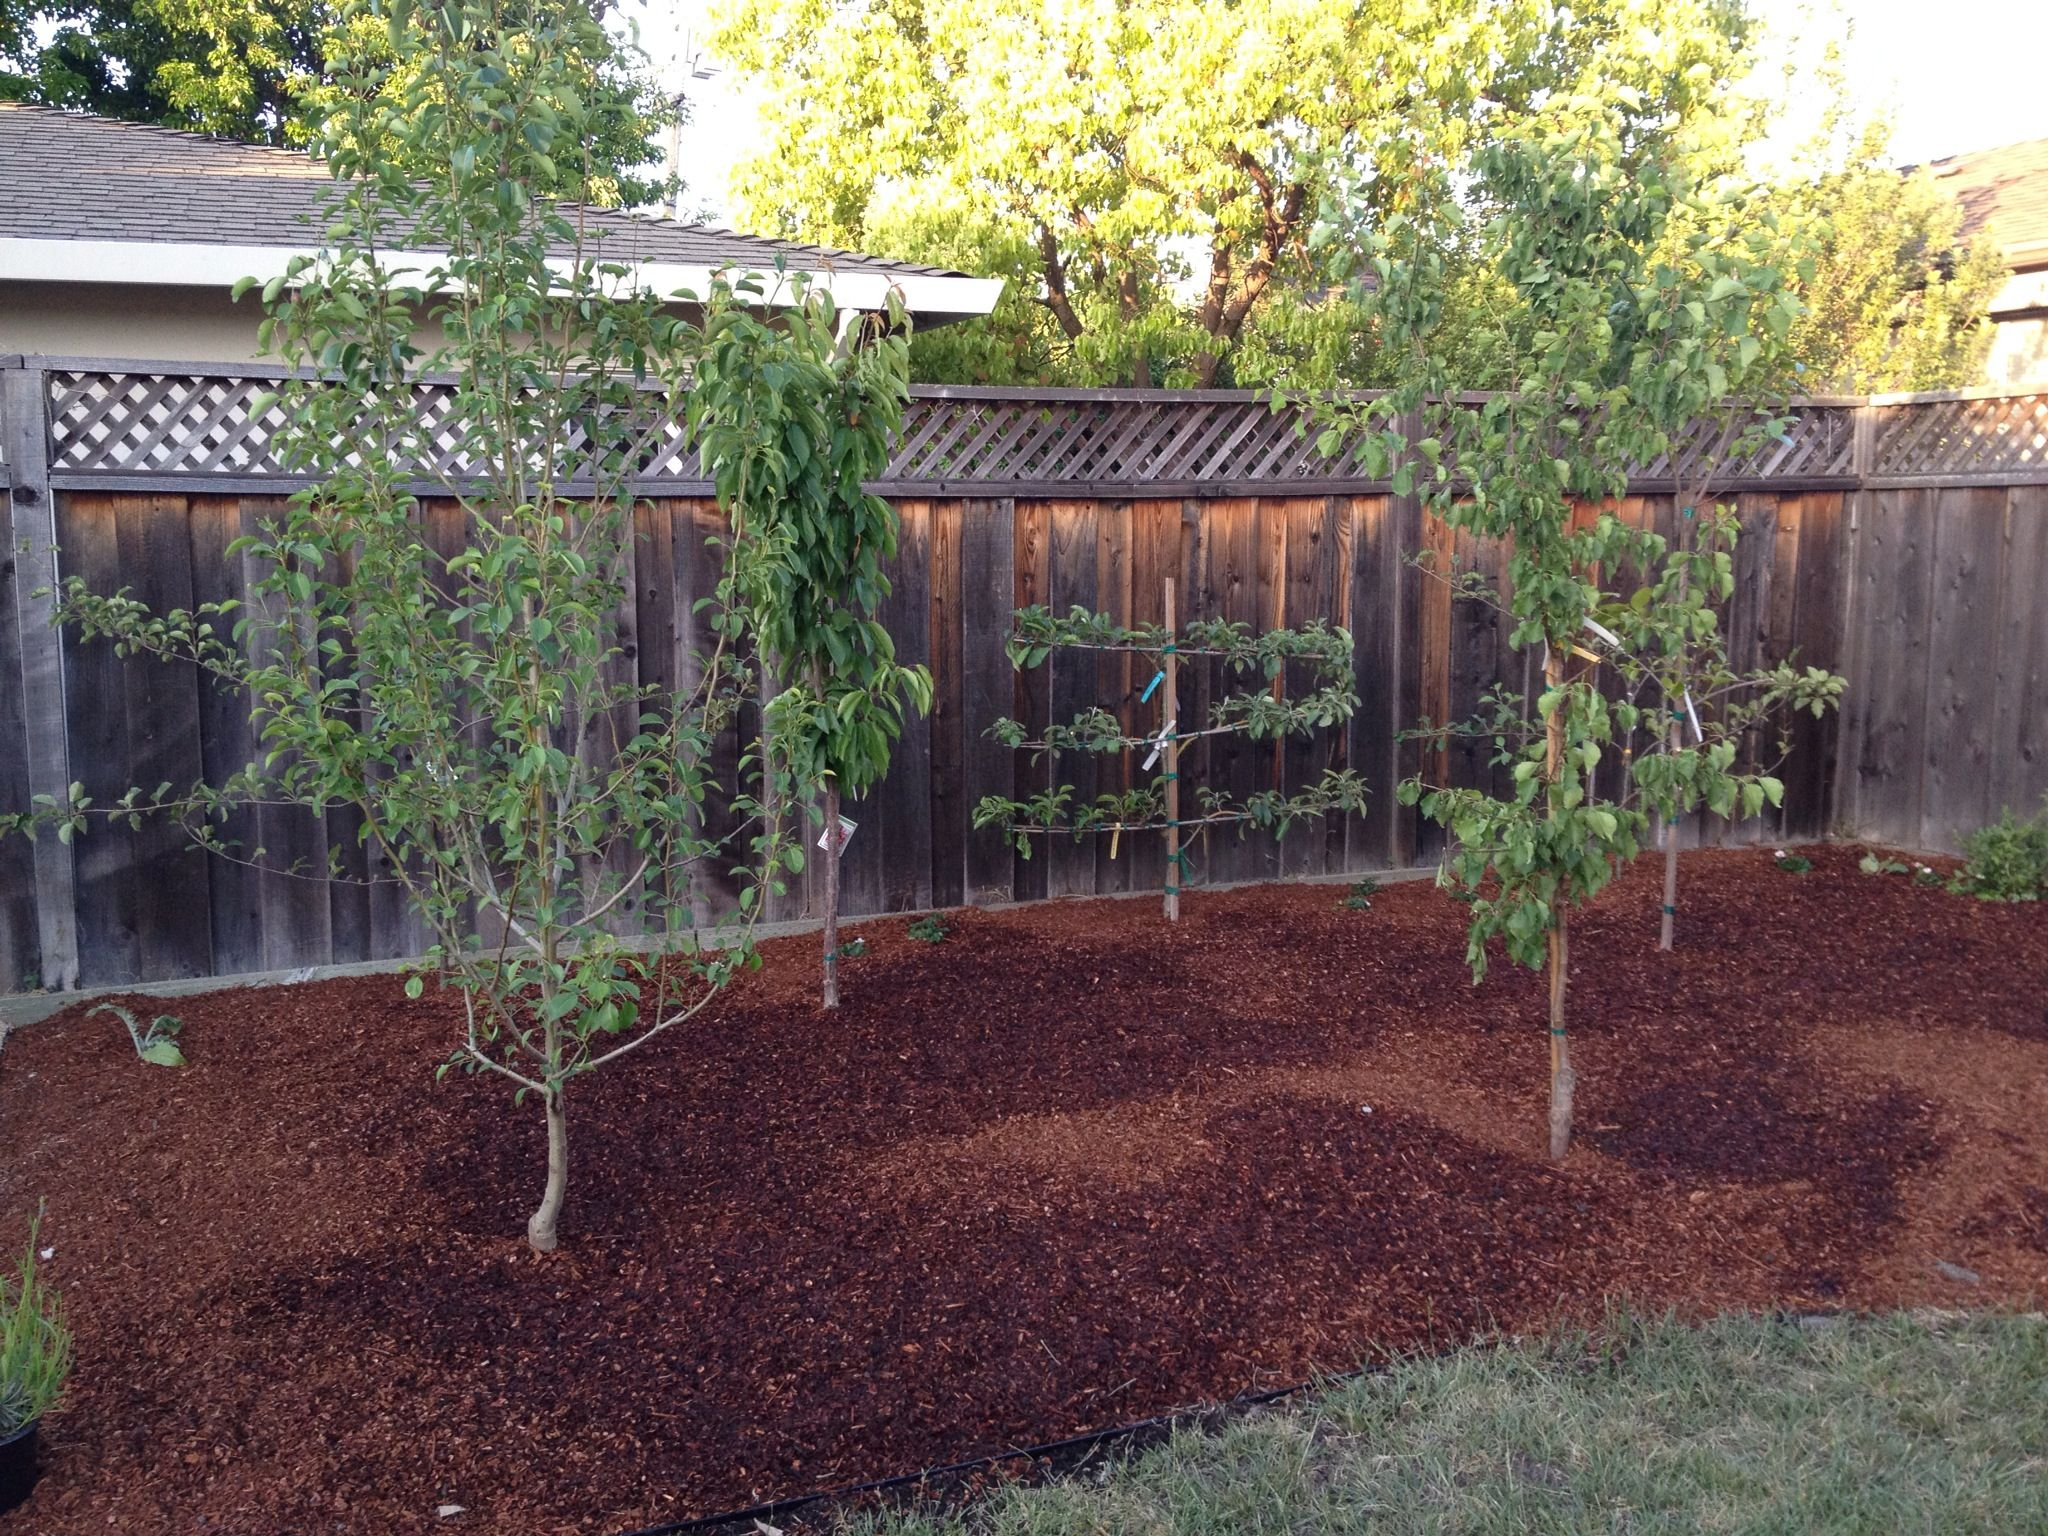 4 28 13 fruit trees in the backyard planted our garden